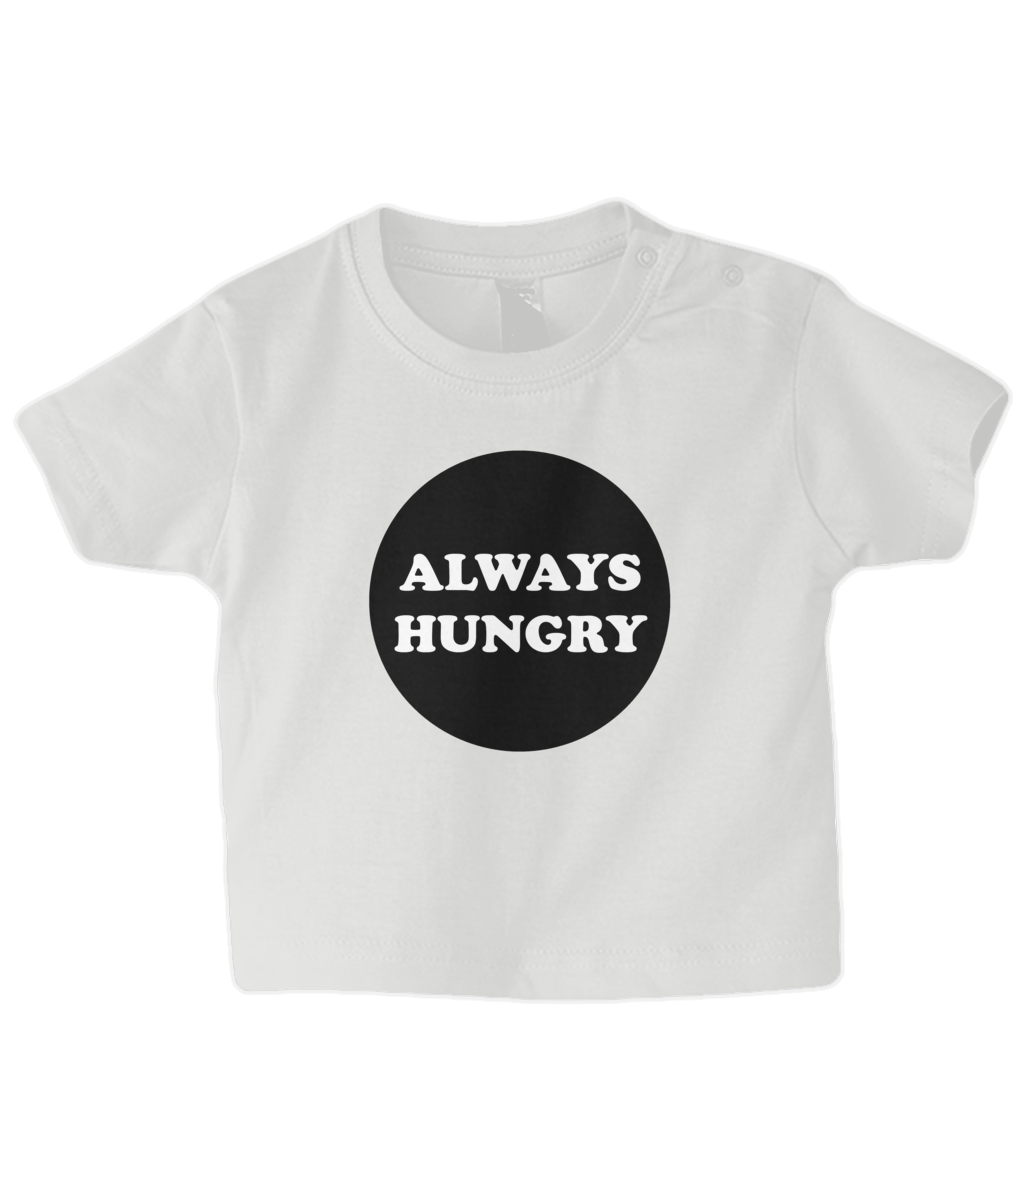 Always Hungry Baby T Shirt